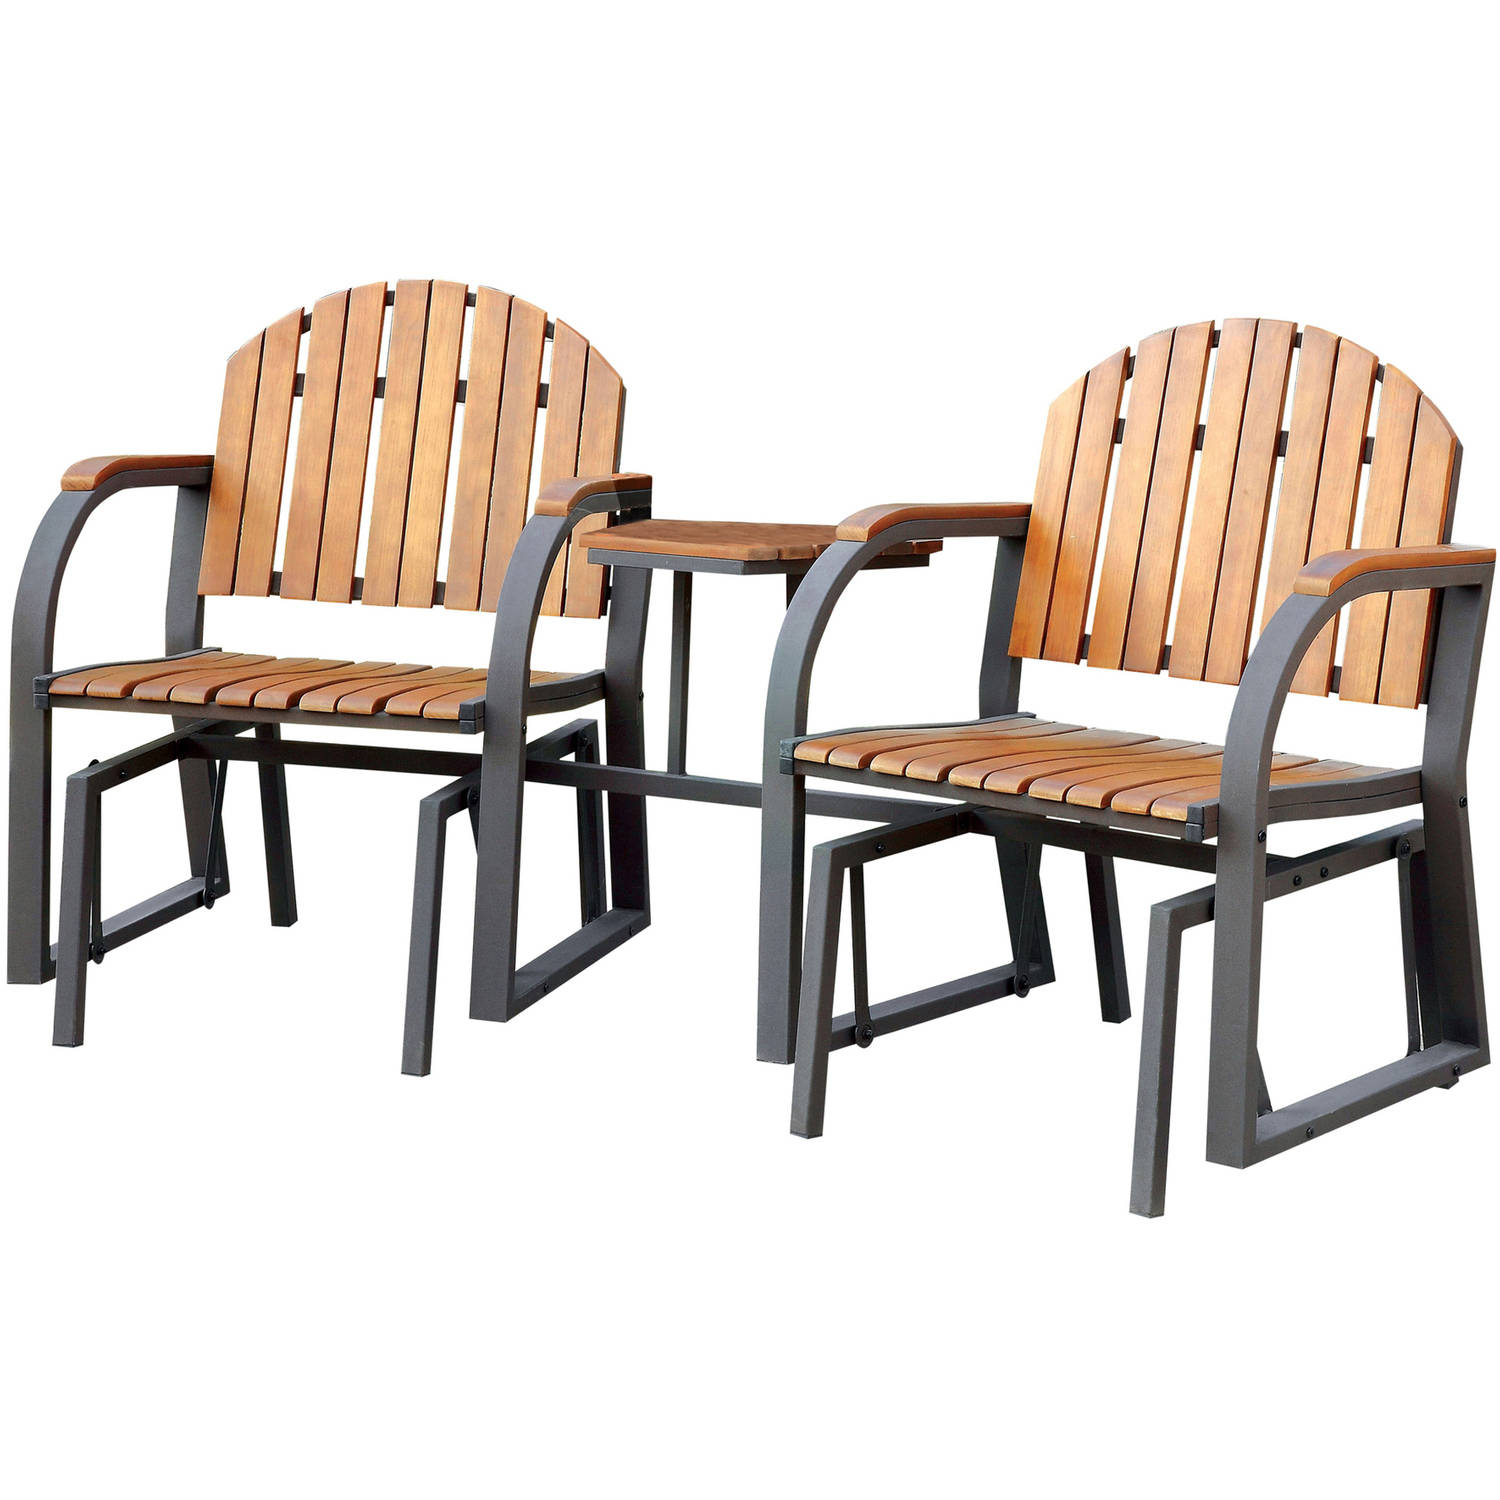 furniture of america sandy patio rocking chairs oak